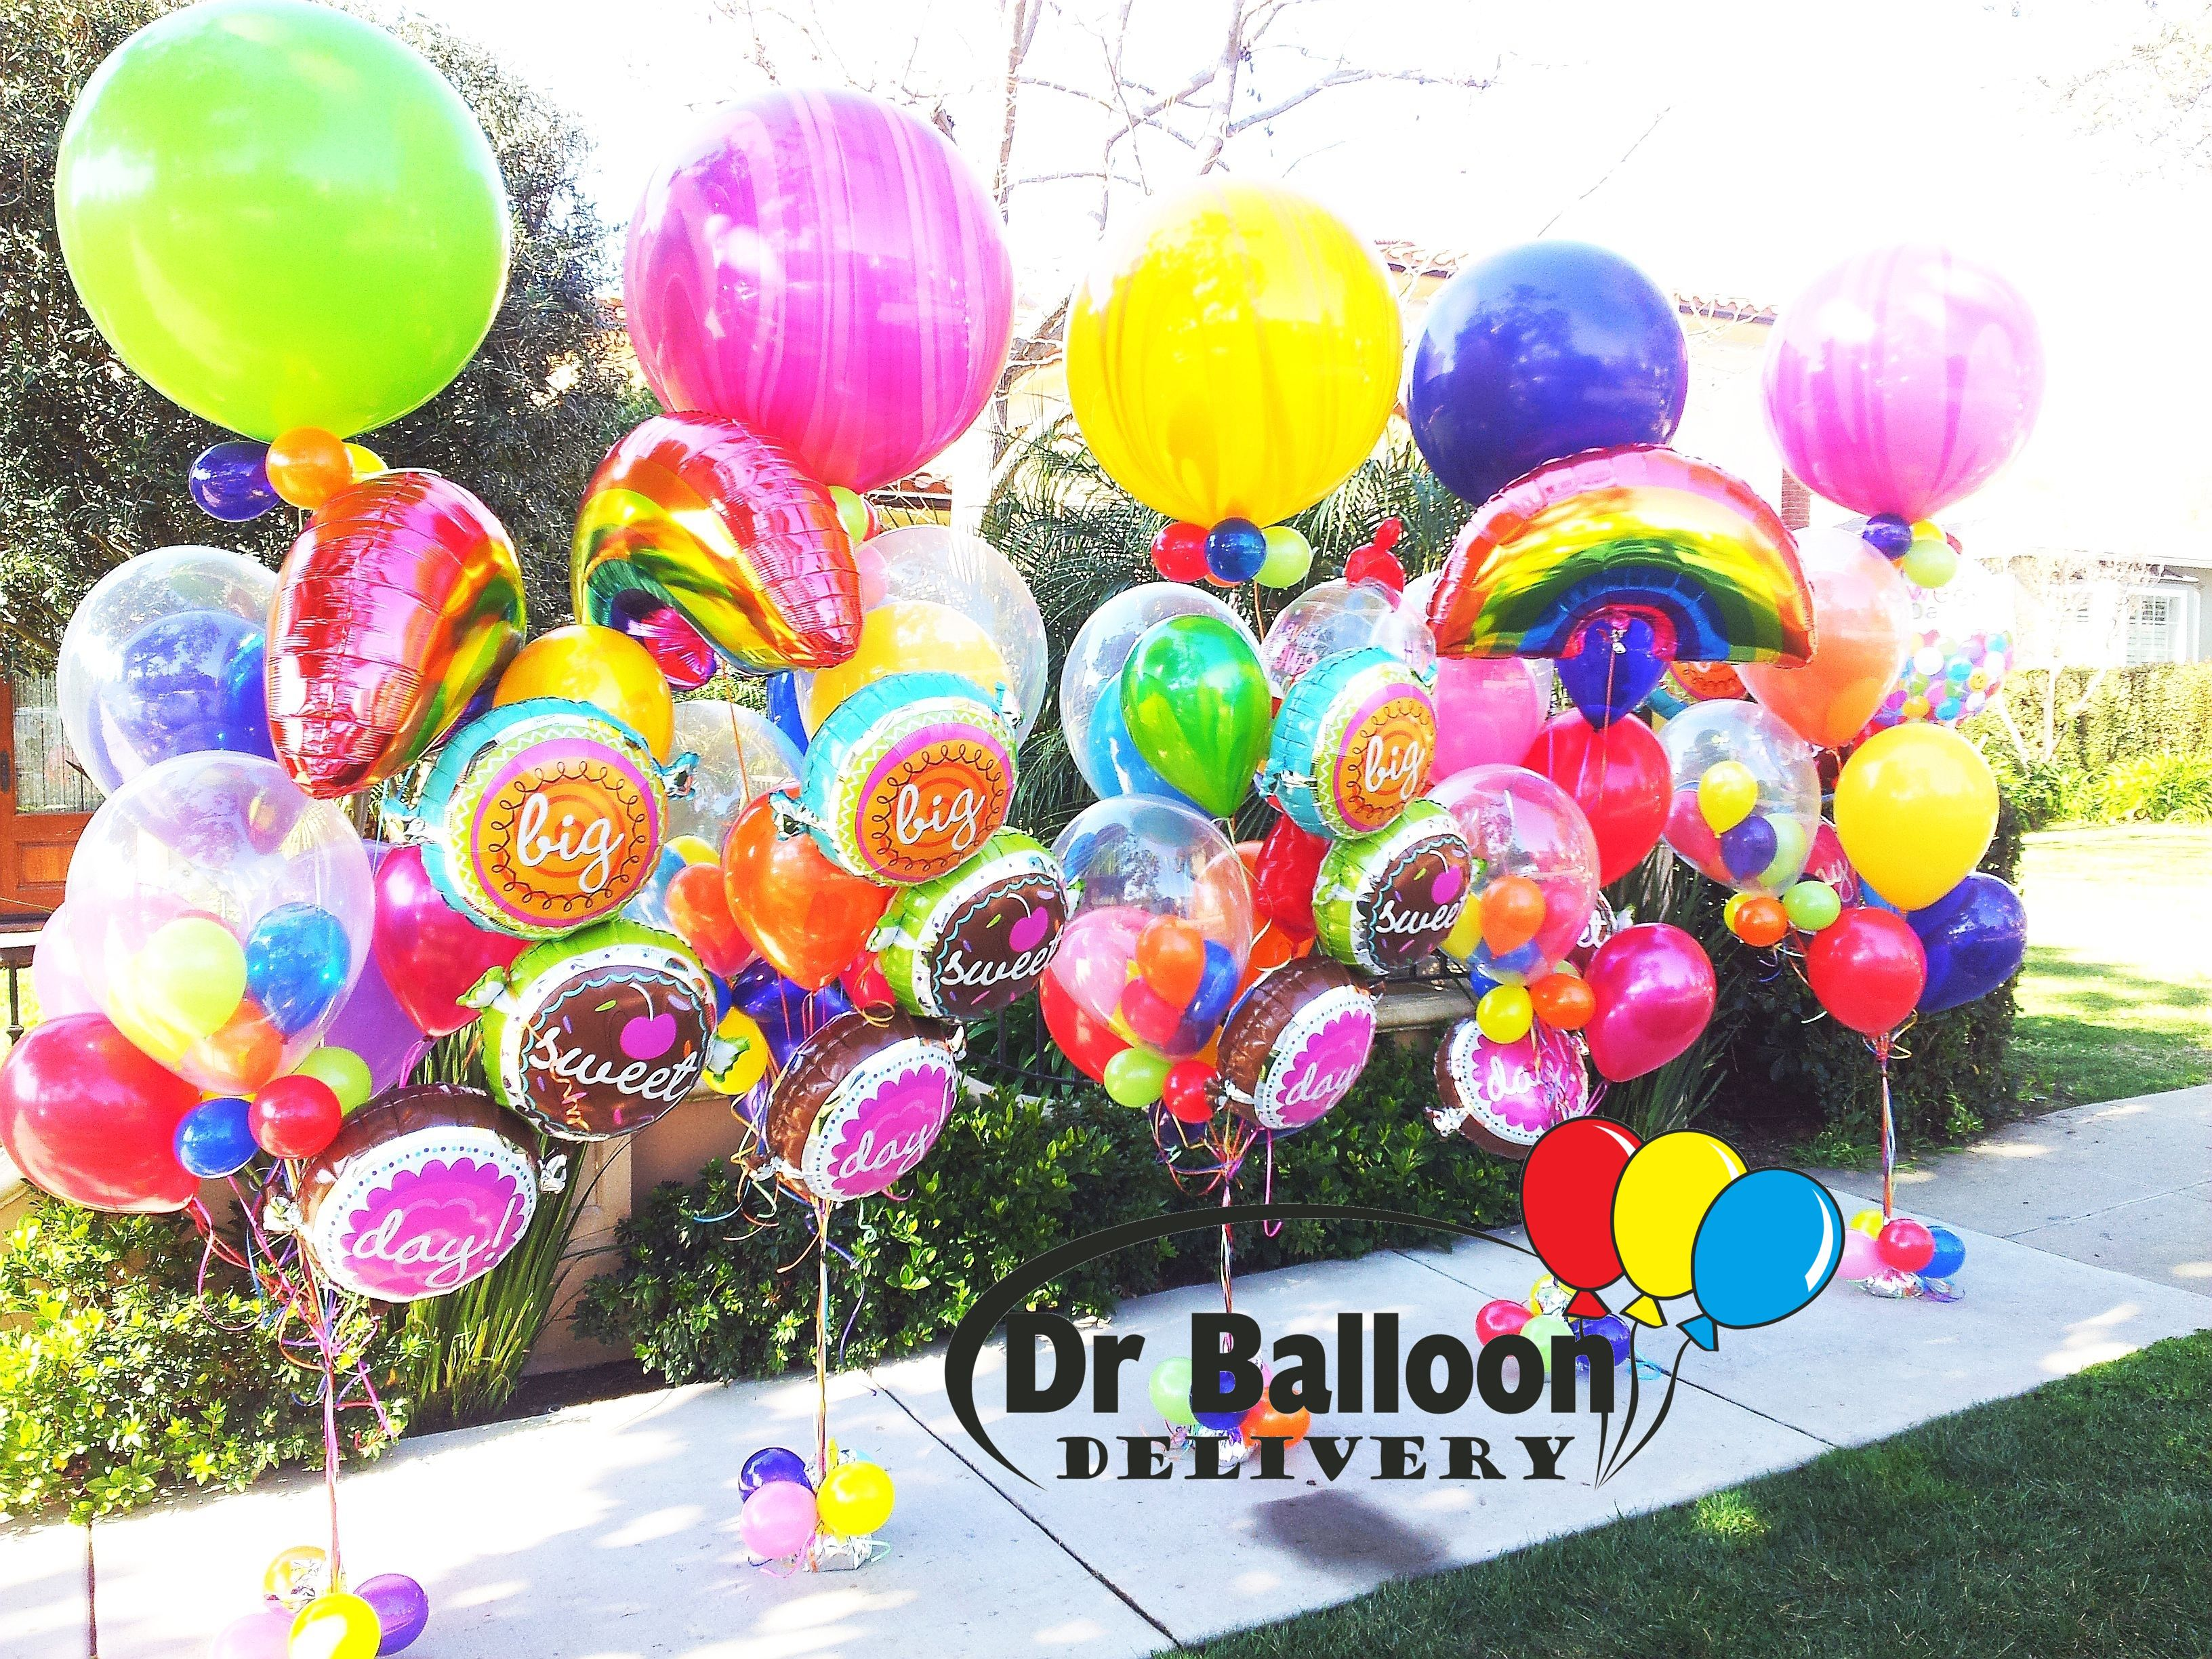 Balloon Delivery Birthday Balloons 4th Bouquet Decorations Bouquets